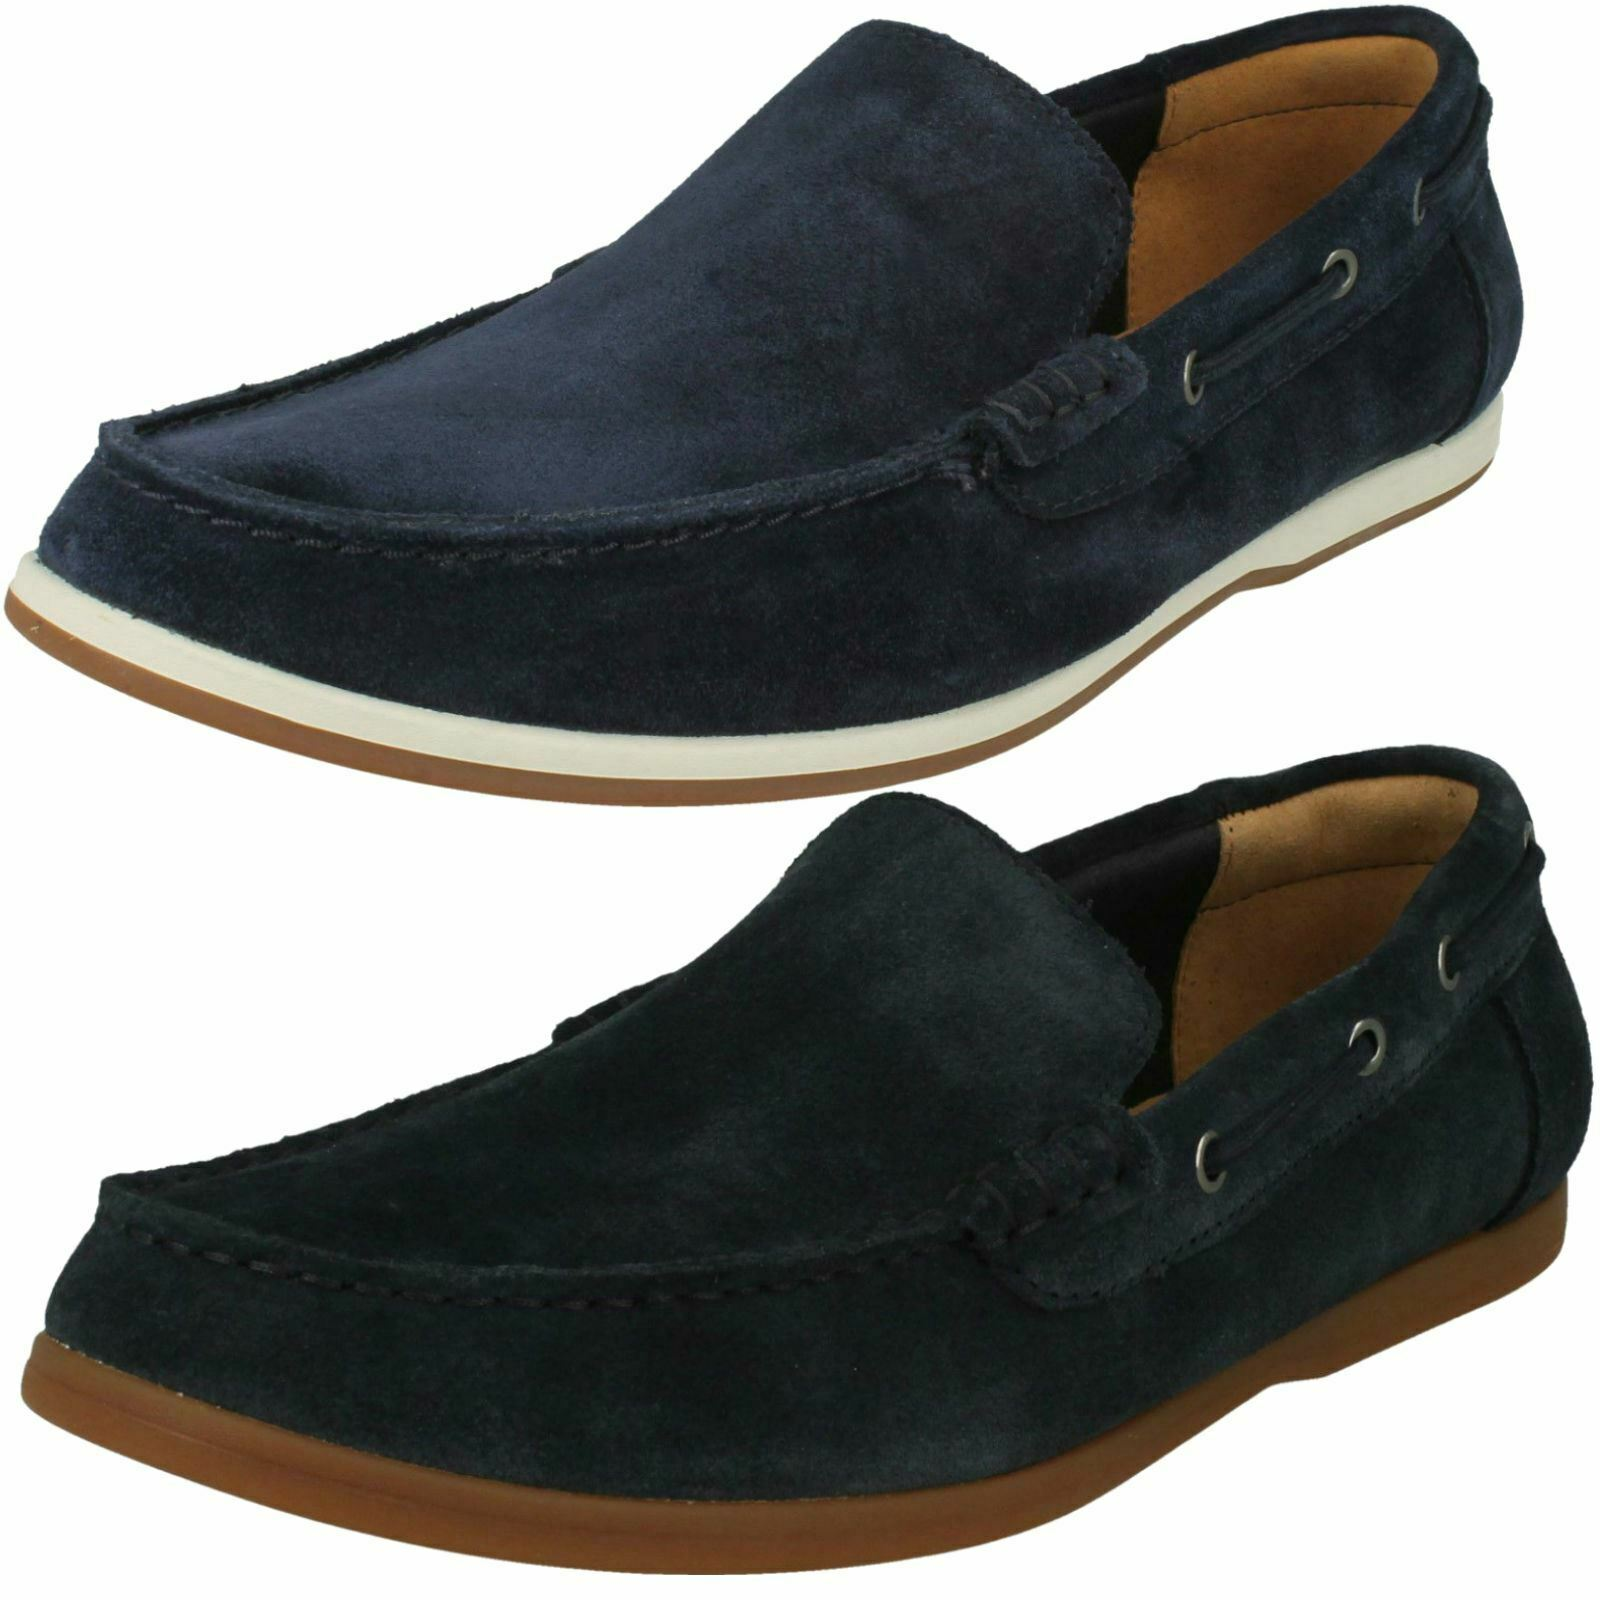 Mens Clarks Casual Slip On Loafers Morven Sun